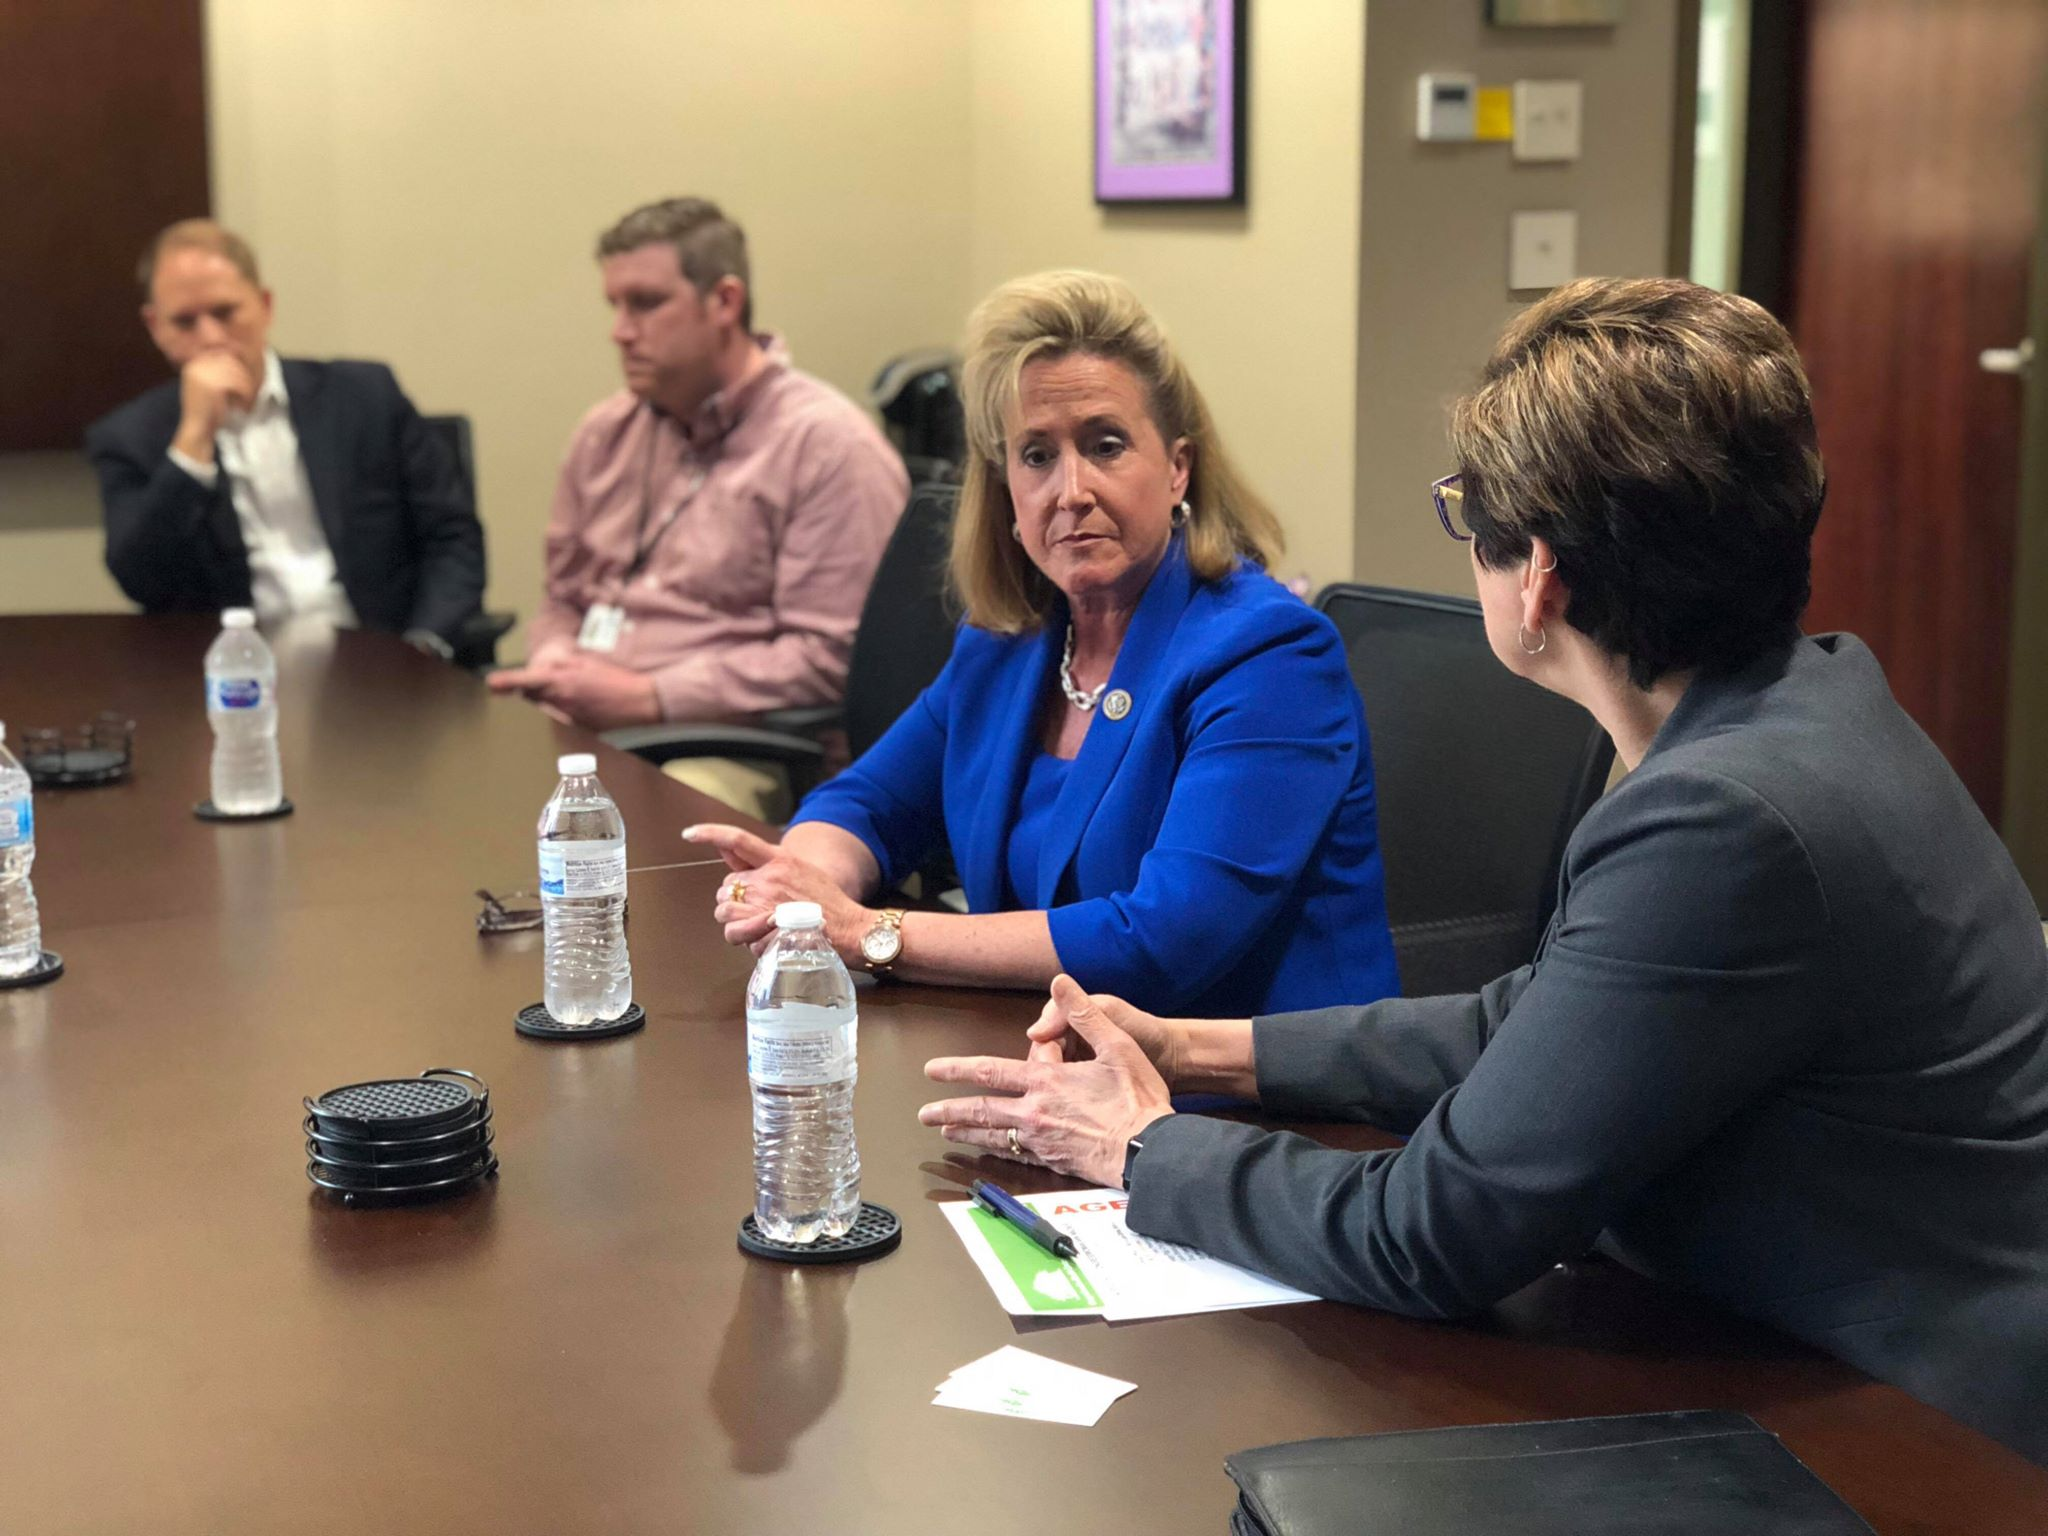 Sue Curfman, CEO of COMTREA, speaks with Congresswoman, Ann Wagner on the Opioid Crisis.